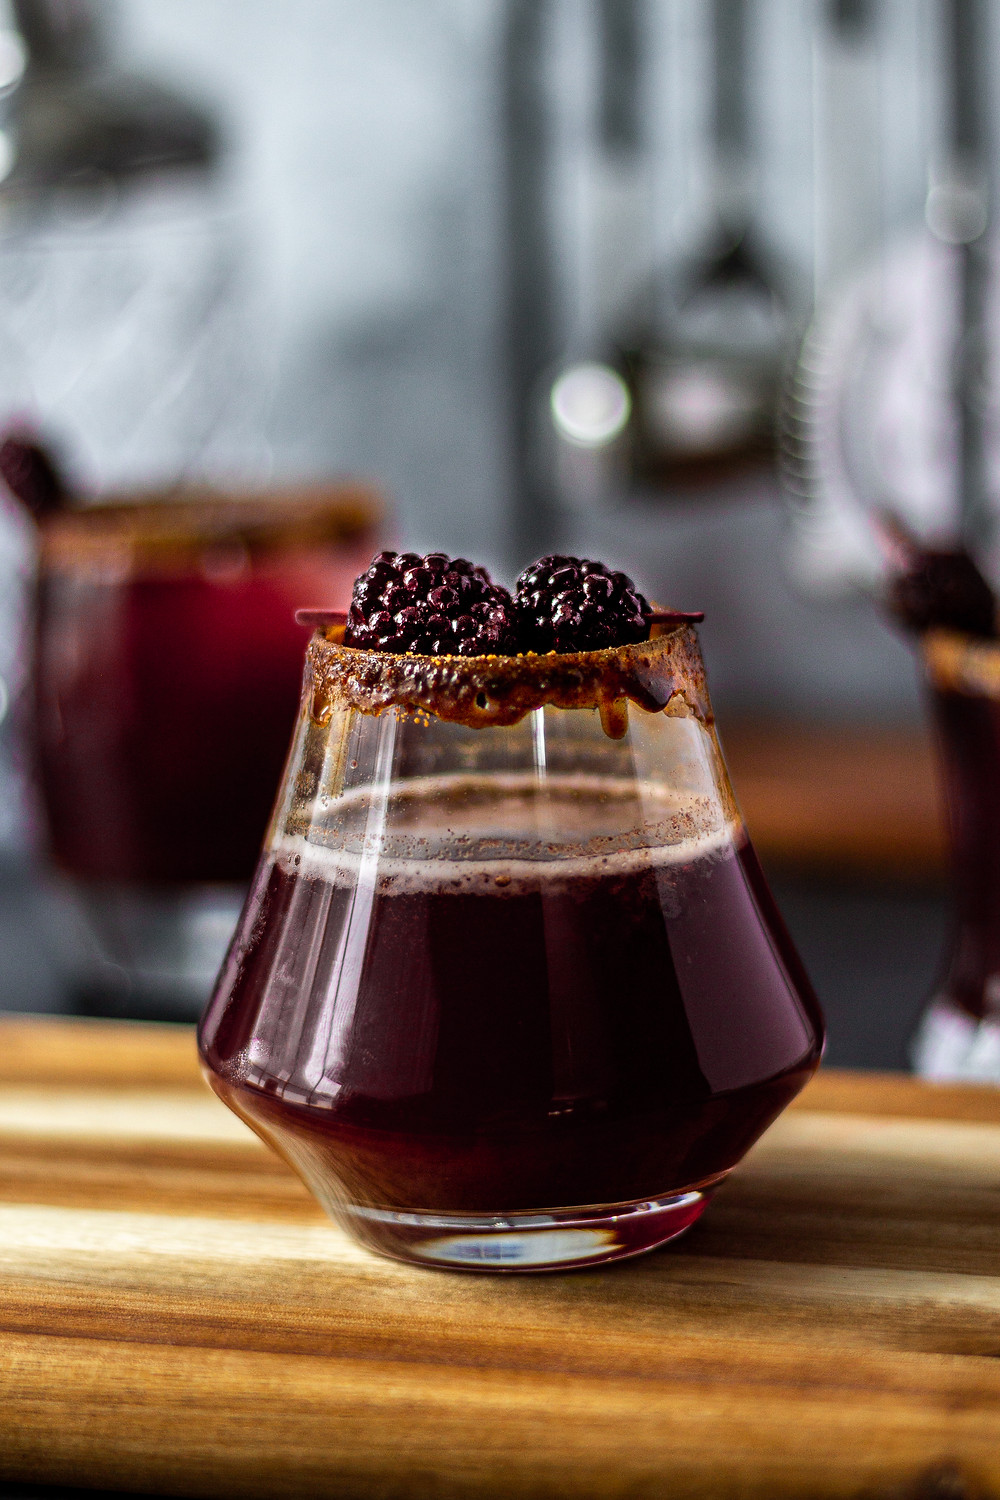 Blackberry Chai Simple Syrup Recipe - for Recess CBD Seltzer Mocktails | Pretty Delicious Life - Looking for a simple mocktail recipe to make at home? Maybe an easy mocktail recipe for game day or Valentine's Day?! Then look no further than this Blackberry Chai Mocktail! This delicious blackberry chai mocktail